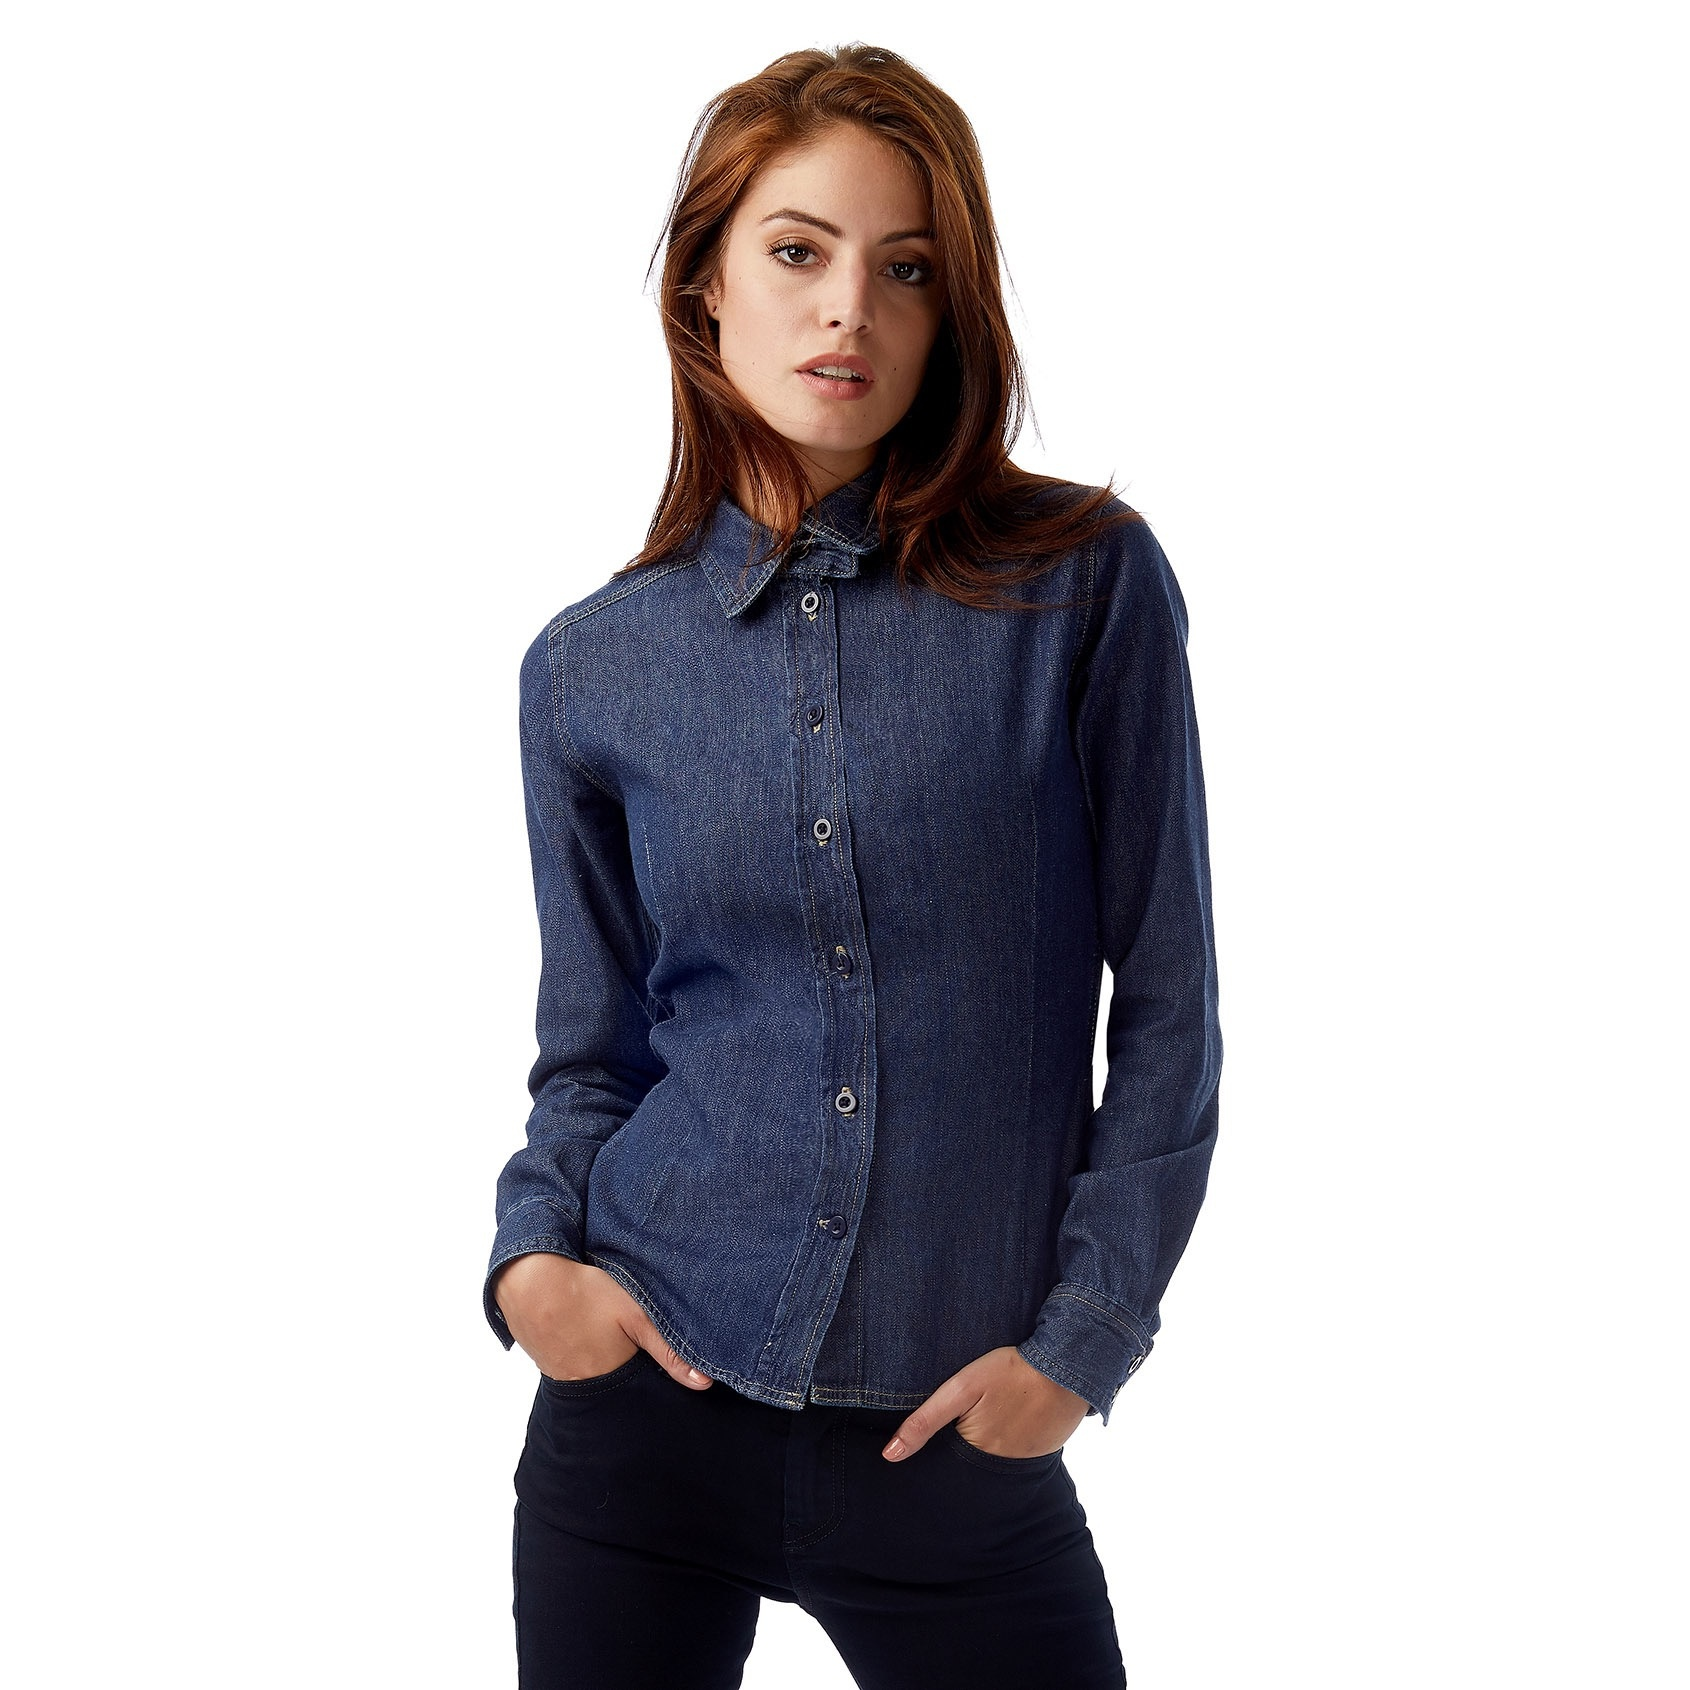 46ef1a4a224 Womens Blue Jean Button Up Shirt – EDGE Engineering and Consulting ...